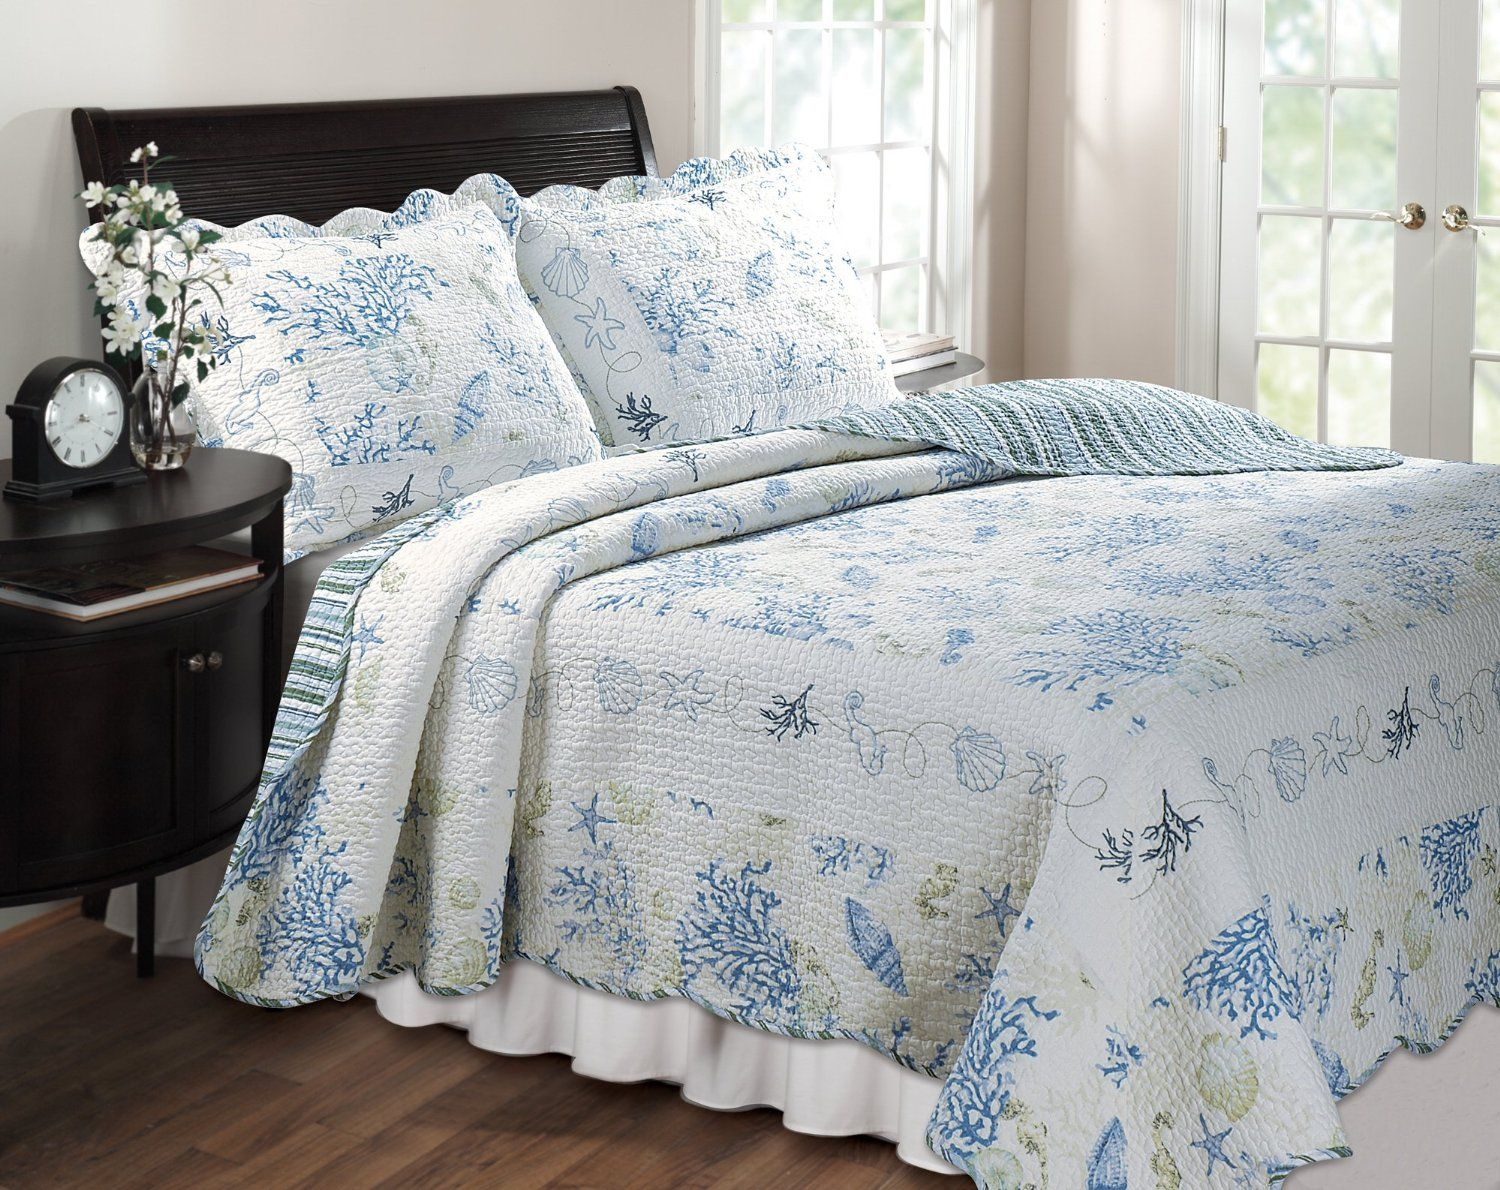 http://tropicalbeachbedding.com/ | Tropical Beach Bedding ... : full quilt sets - Adamdwight.com